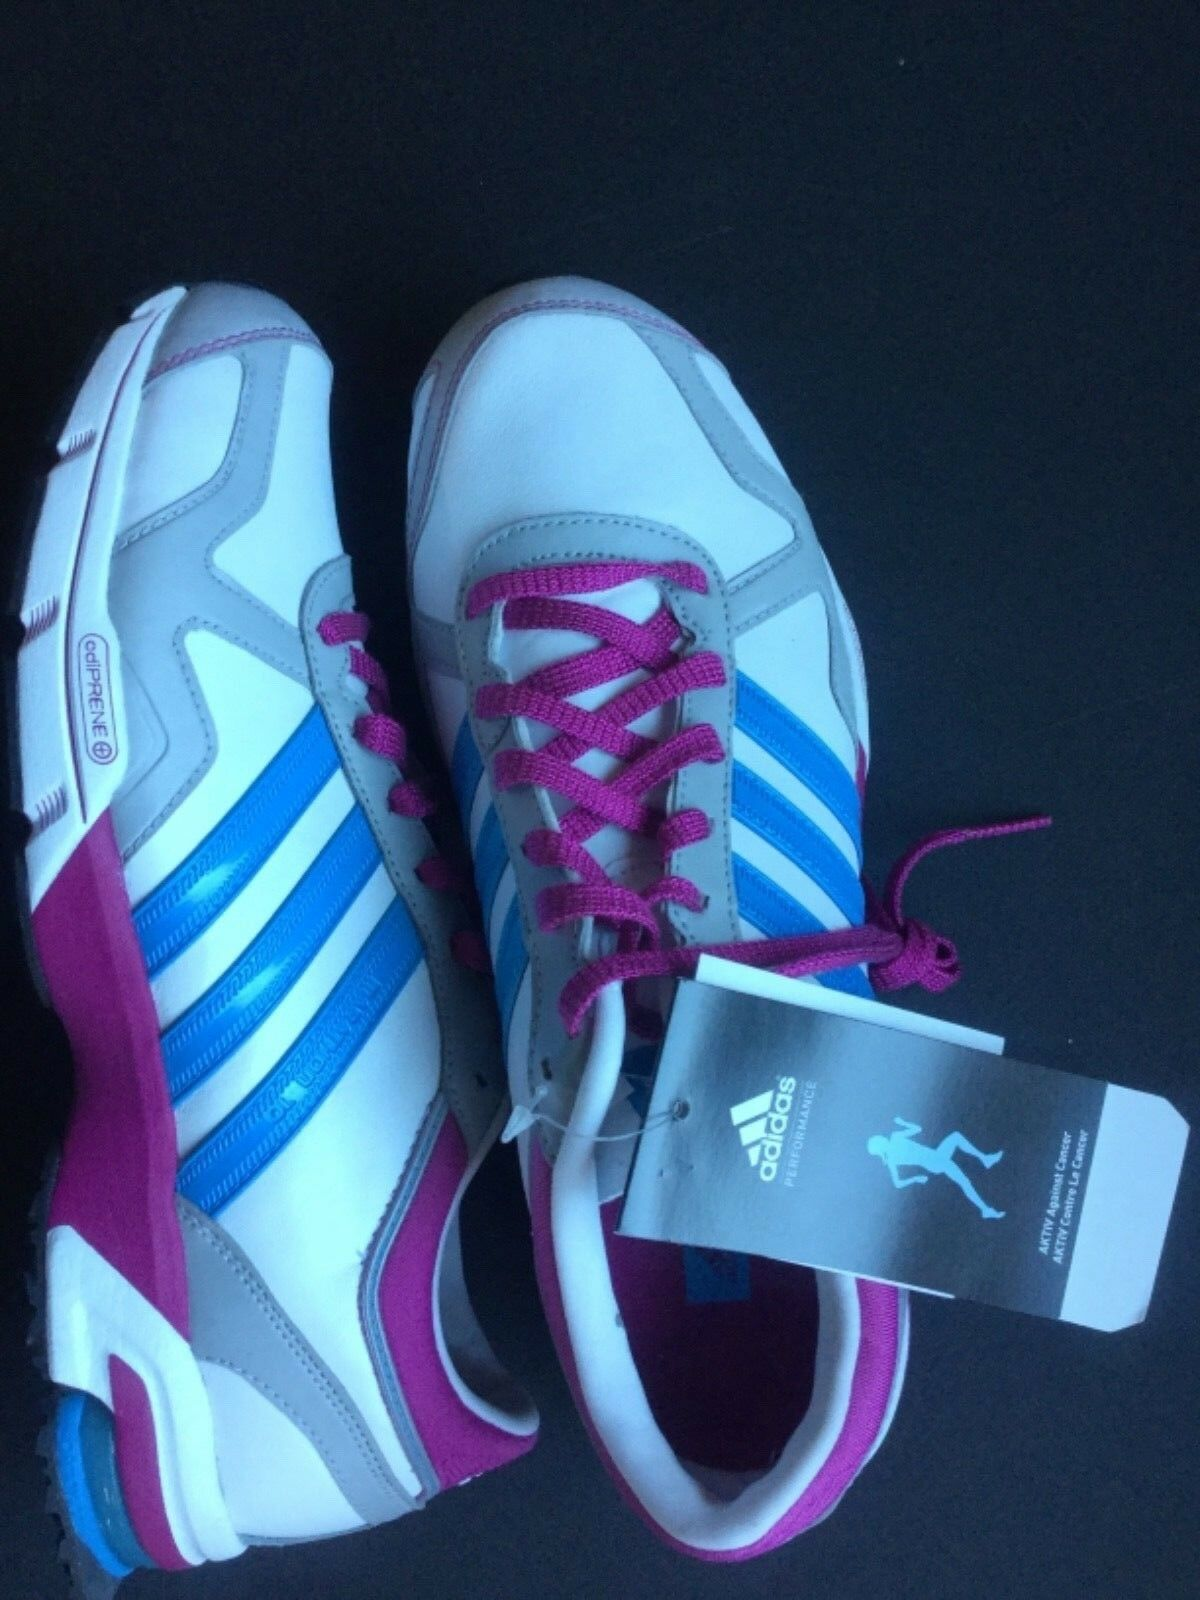 Brand NEW Adidas Marathon 10 Sneakers, Running Shoes, size 9, White and Purple Wild casual shoes